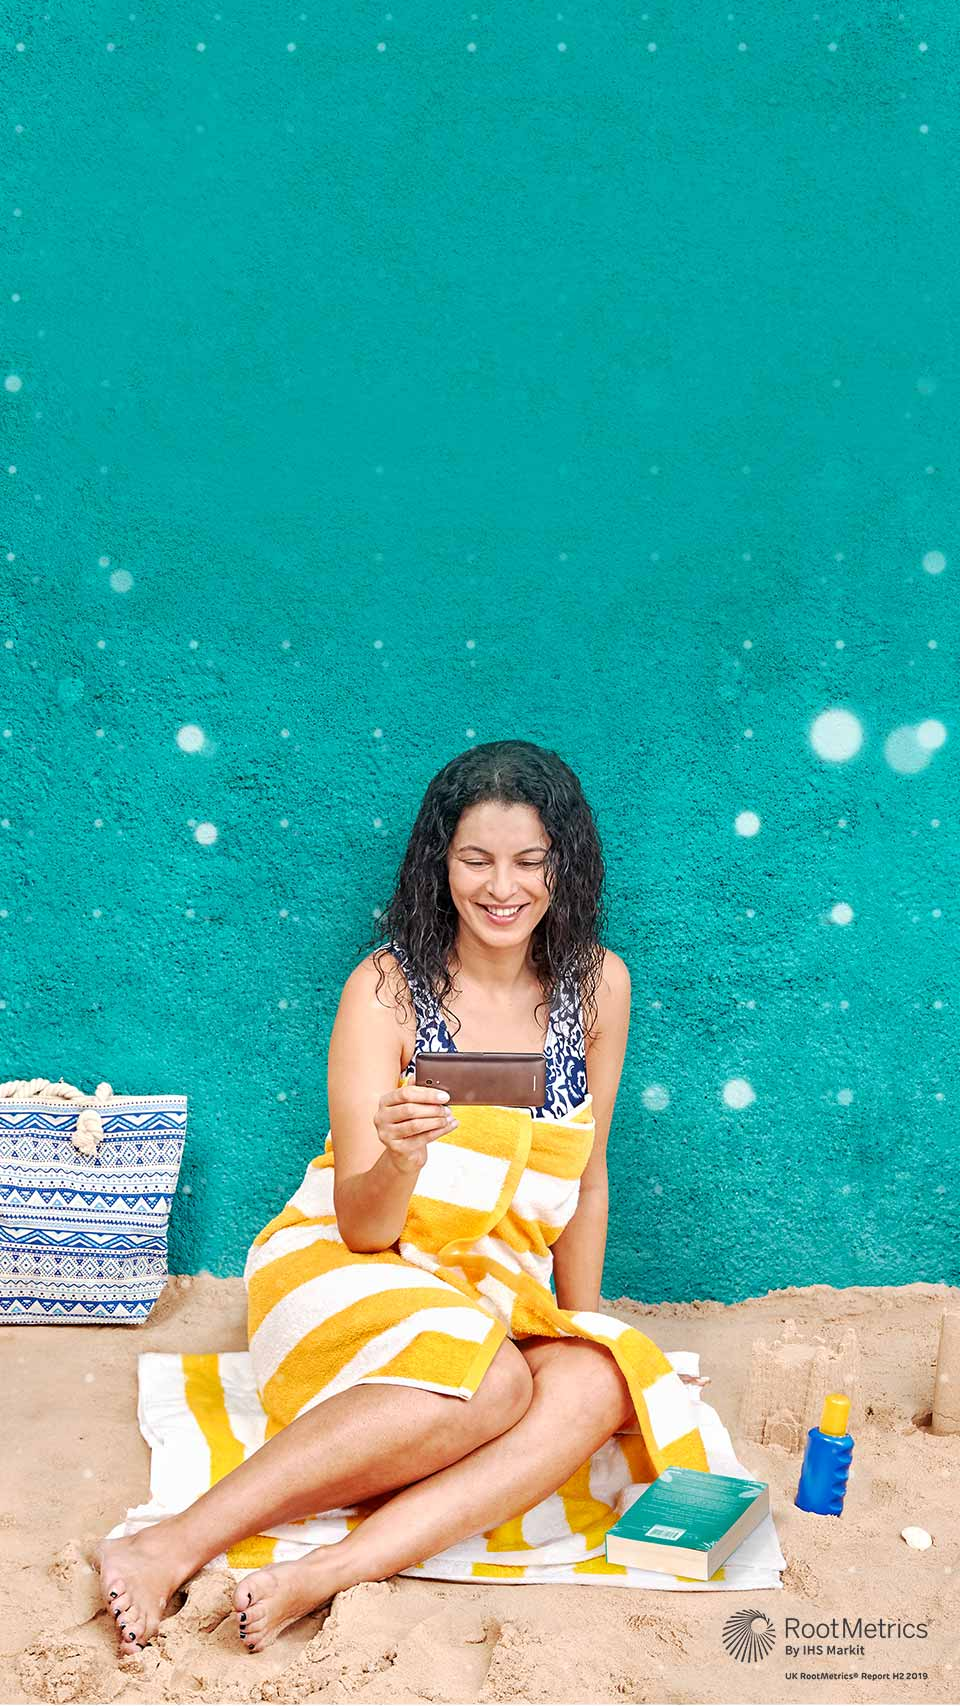 Woman on the beach holding a mobile device